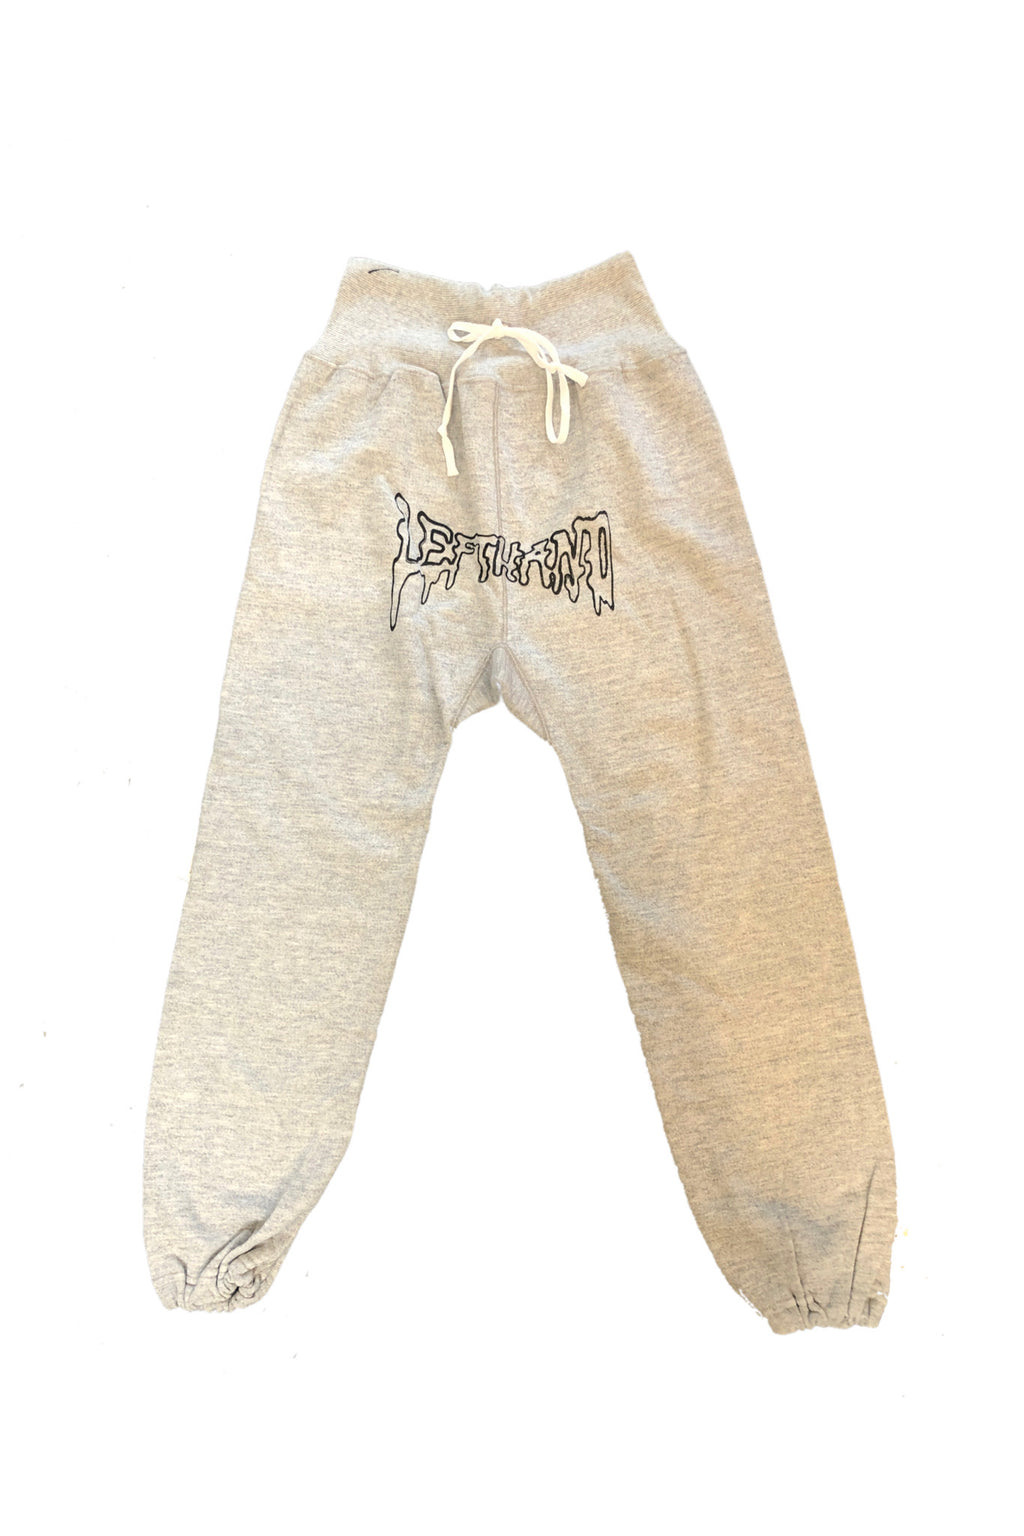 The best sweats ever